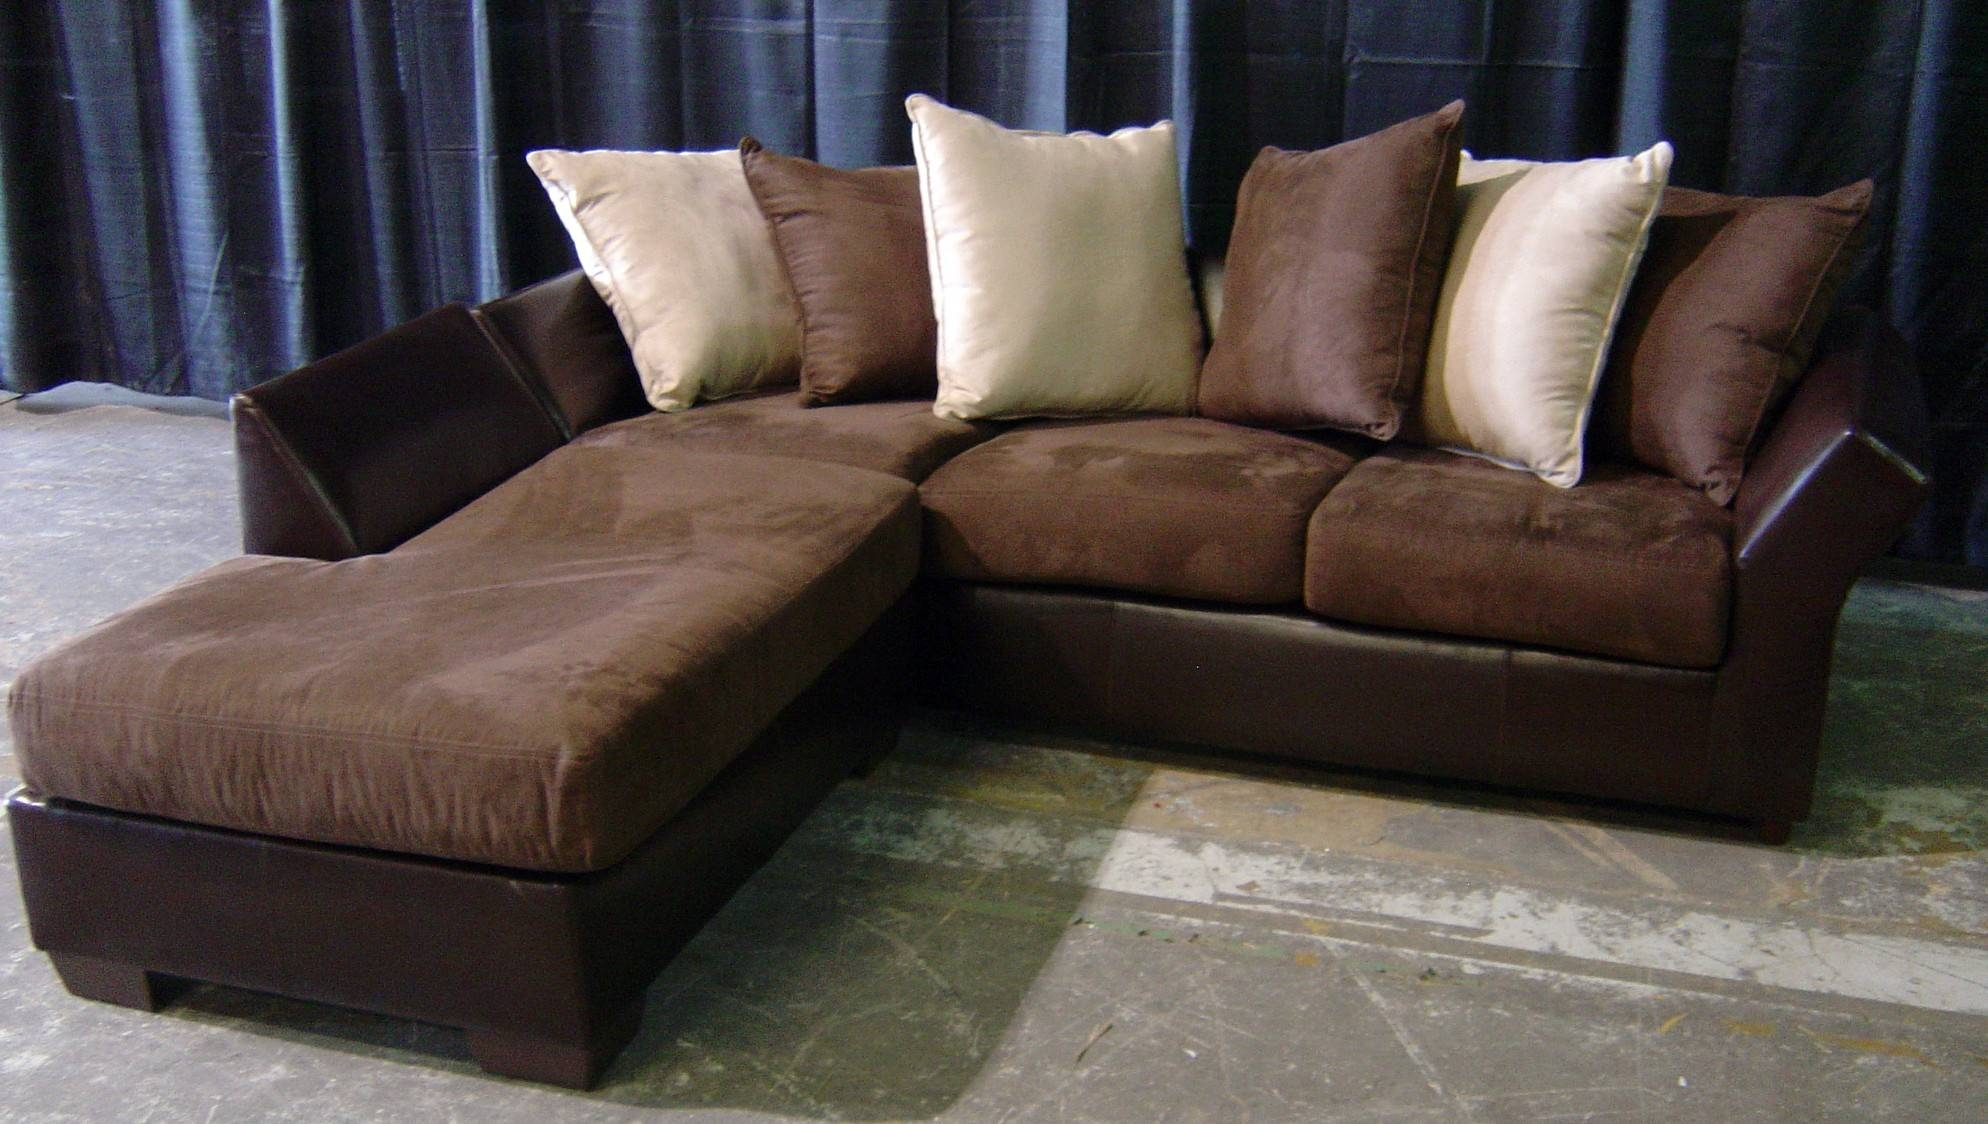 Leather And Suede Sectional Sofa - Leather Sectional Sofa with regard to Leather and Suede Sectional Sofa (Image 20 of 25)